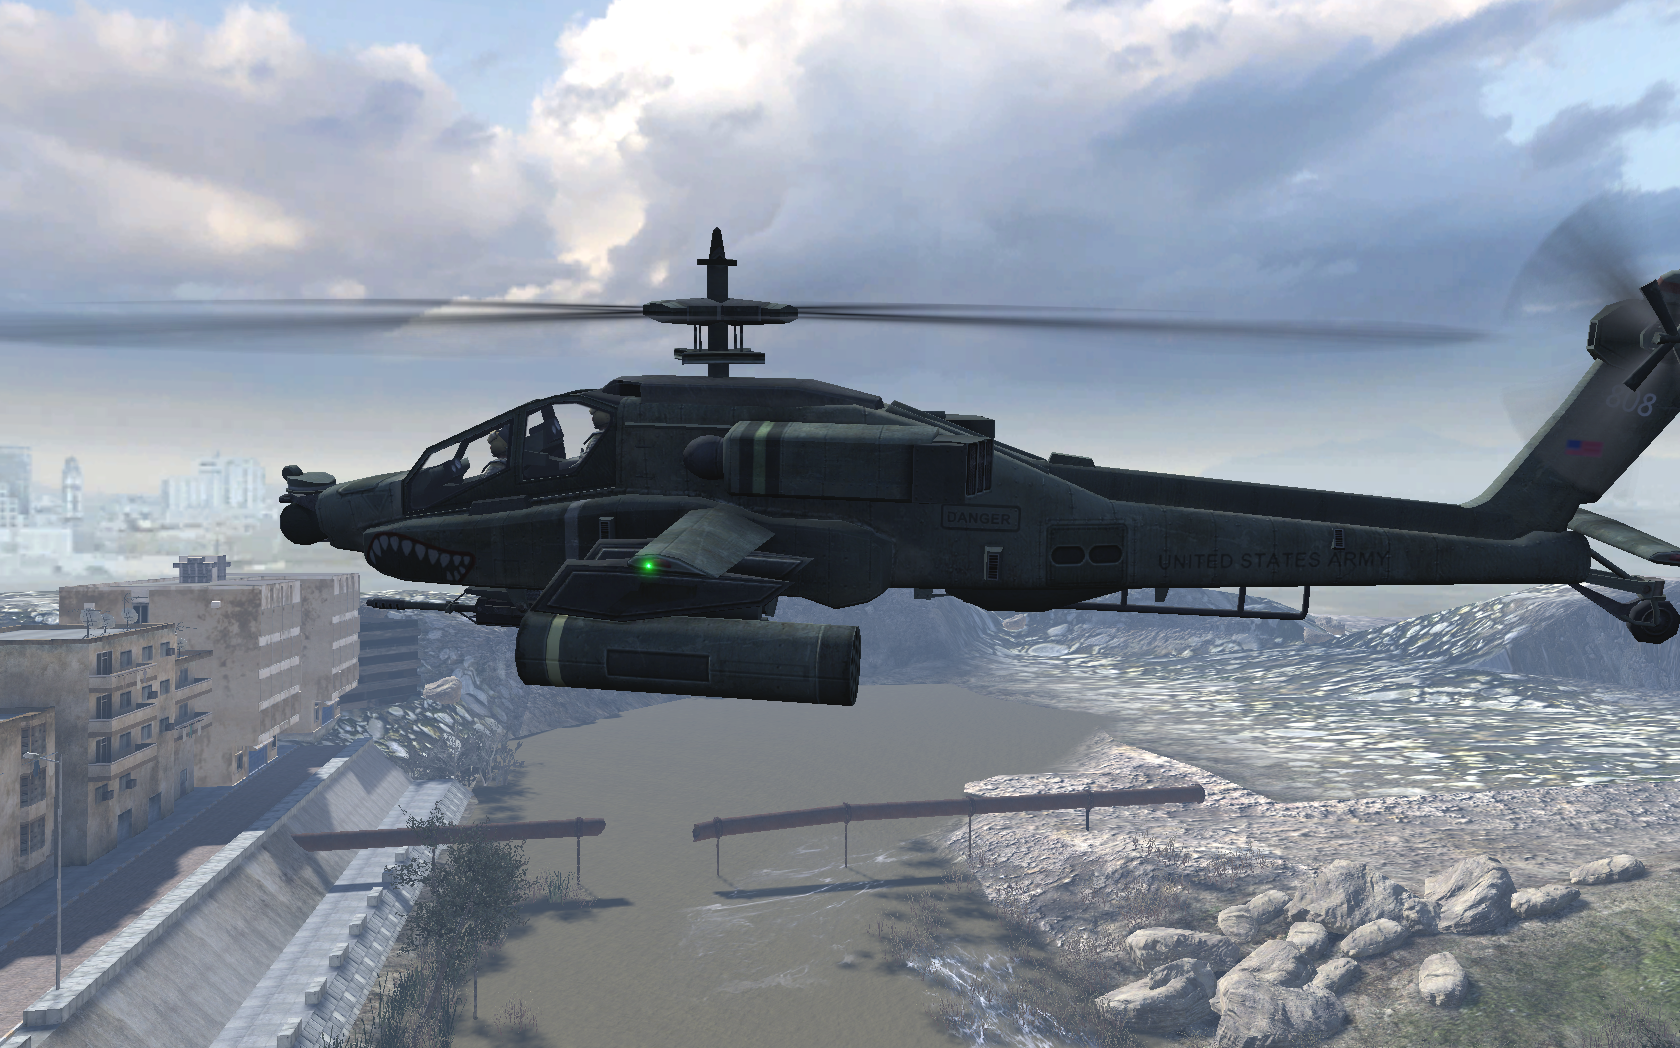 most advanced helicopter with File Ah 64 Apache Side View Team Player Mw2 on Helicopter Sales additionally G Tbtb Kingsfield Helicopters Robinson R44 Astro Raven in addition 89397 F 142a Usaf 6th Generation Fighter Wip further Luxury Helicopter To Debut At Monaco Yacht Show Bell 525 Relentless additionally G Ursa Private Sikorsky S 76.